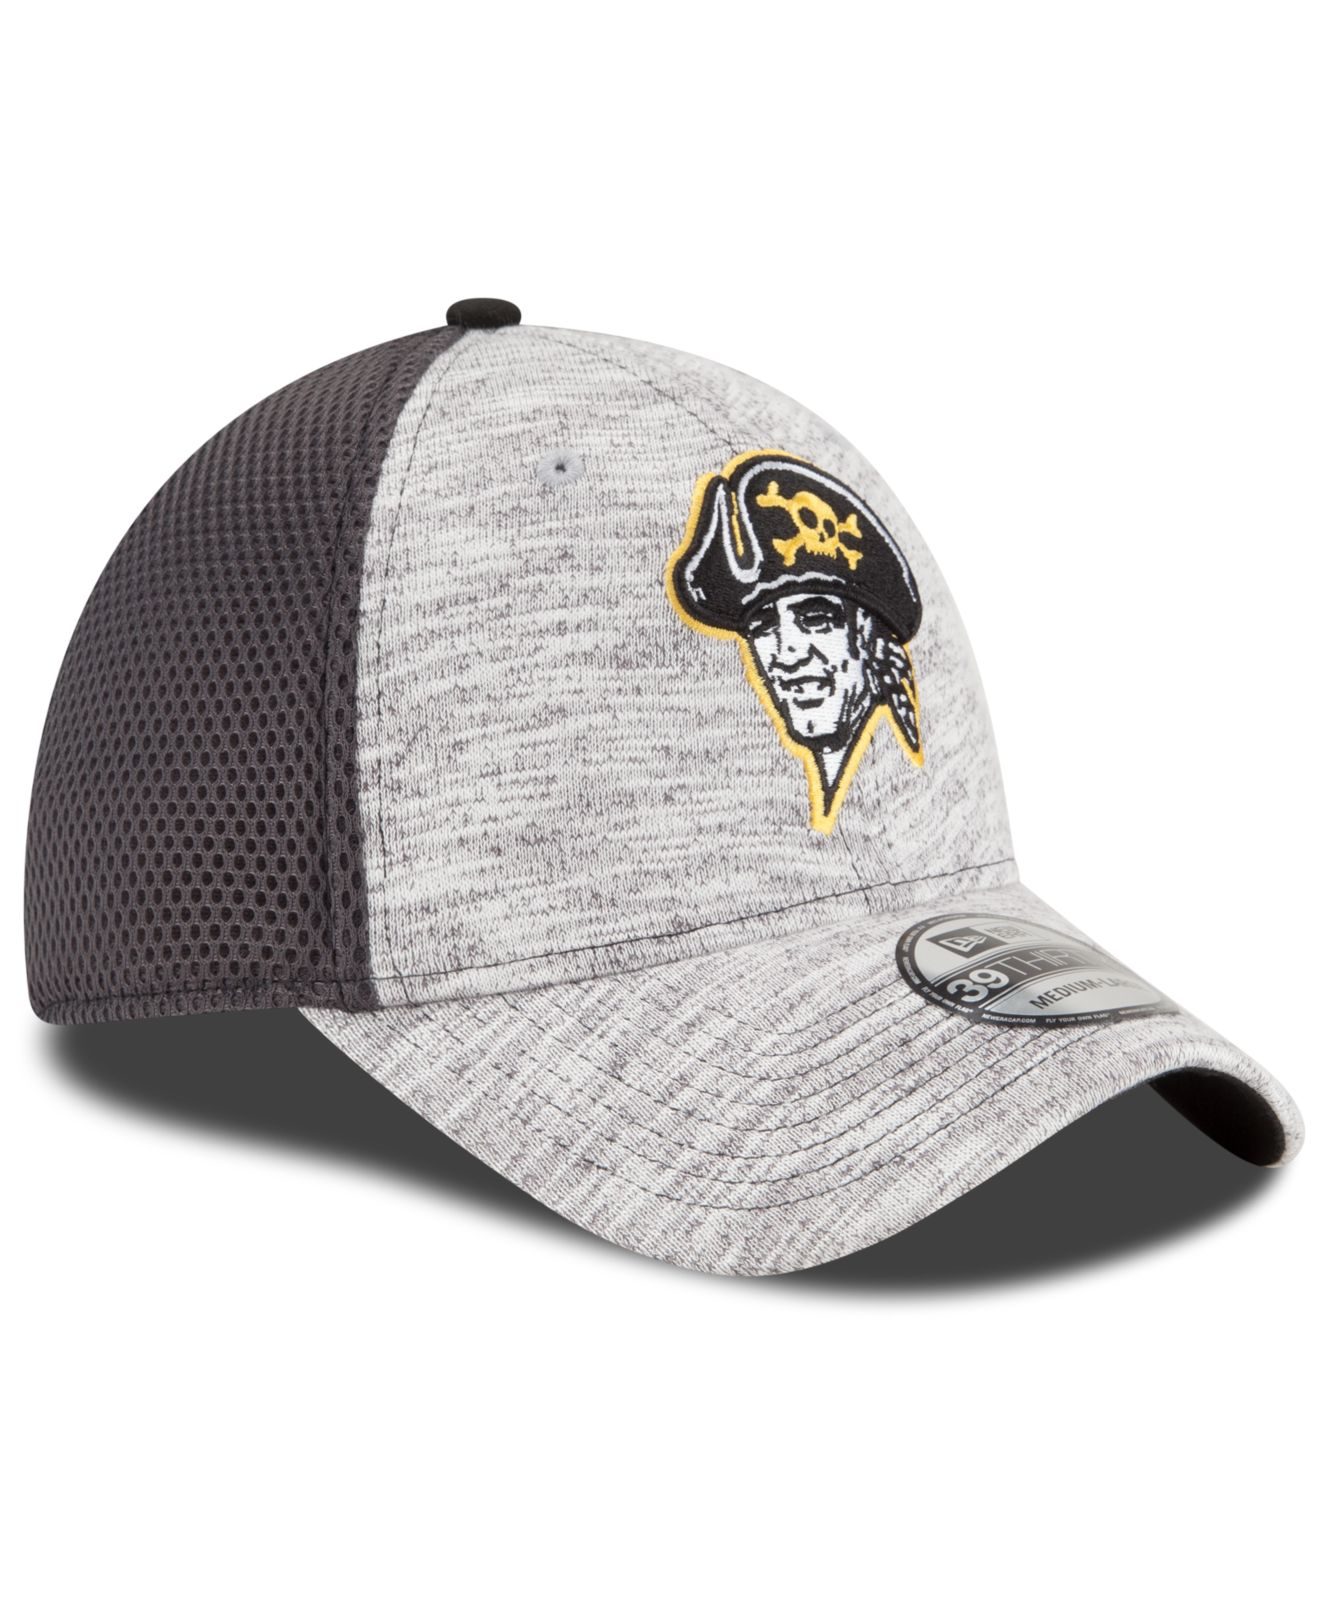 1962b8bce06 ... 59fifty cap 7a66f 58abf order lyst ktz pittsburgh pirates clubhouse  39thirty cap in gray for men c3dde 1add5 ...